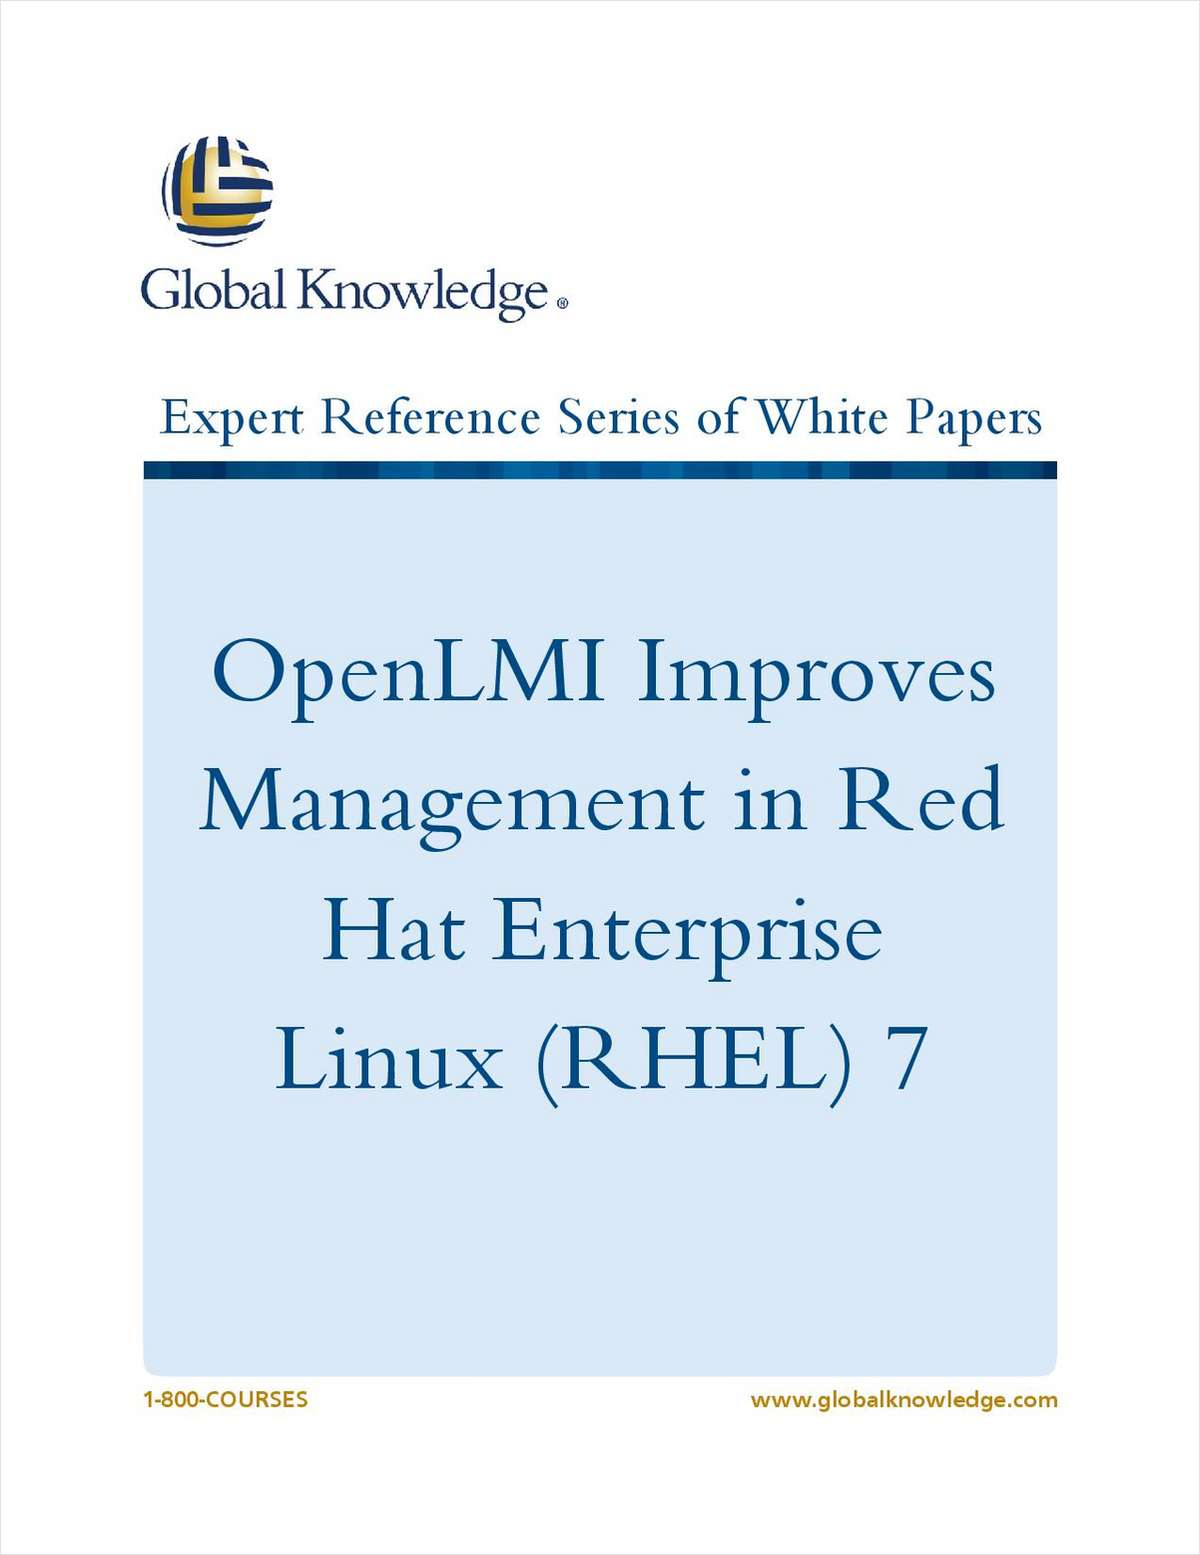 OpenLMI Improves Management in Red Hat Enterprise Linux (RHEL) 7